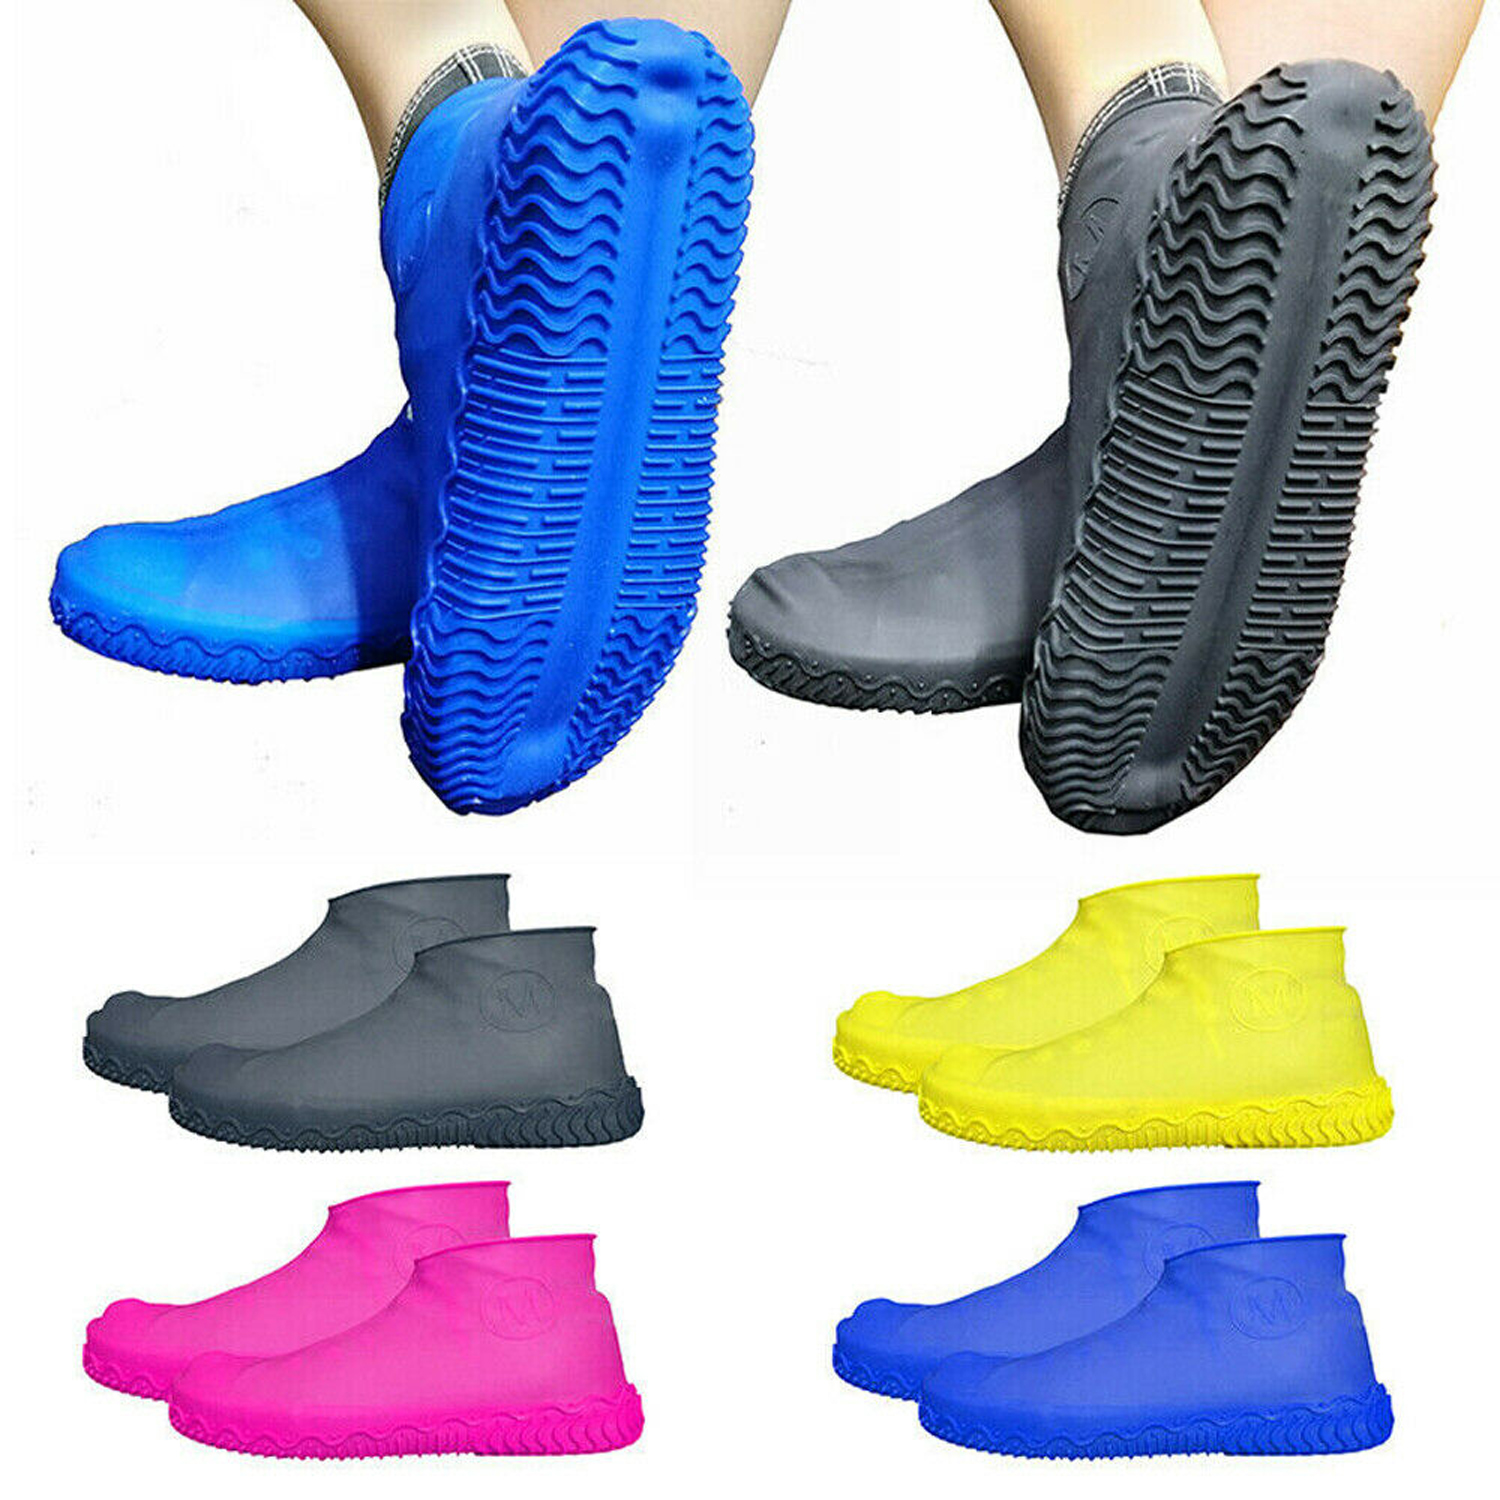 Medium, Blue Waterproof Shoe Cover Silicone Water-resistan Unisex Shoes Protectors Rain Boots Overshoes